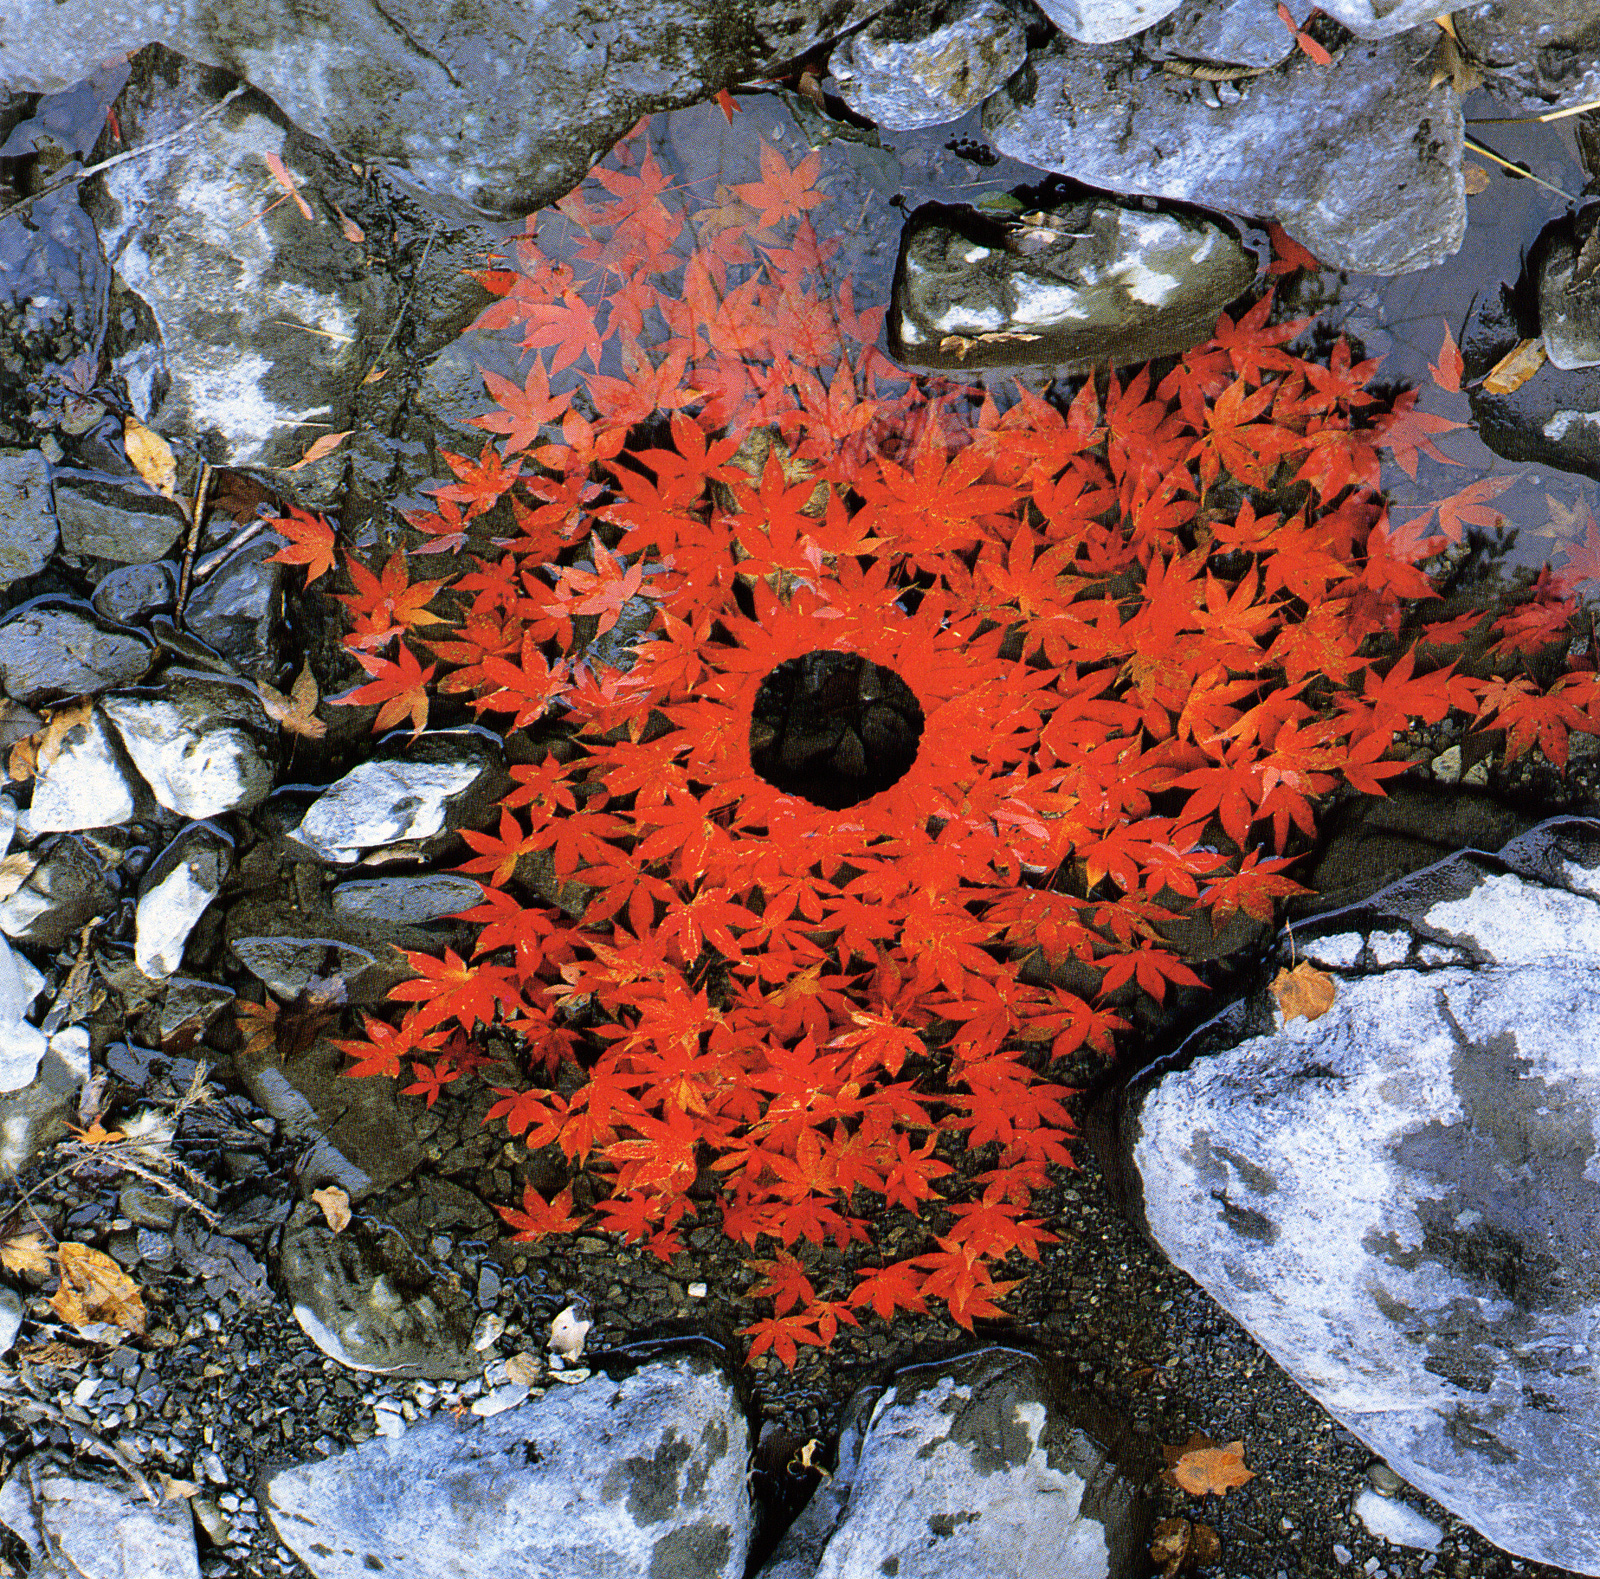 land art Andy Goldsworthy 03 Les oeuvres dans la nature dAndy Goldsworthy